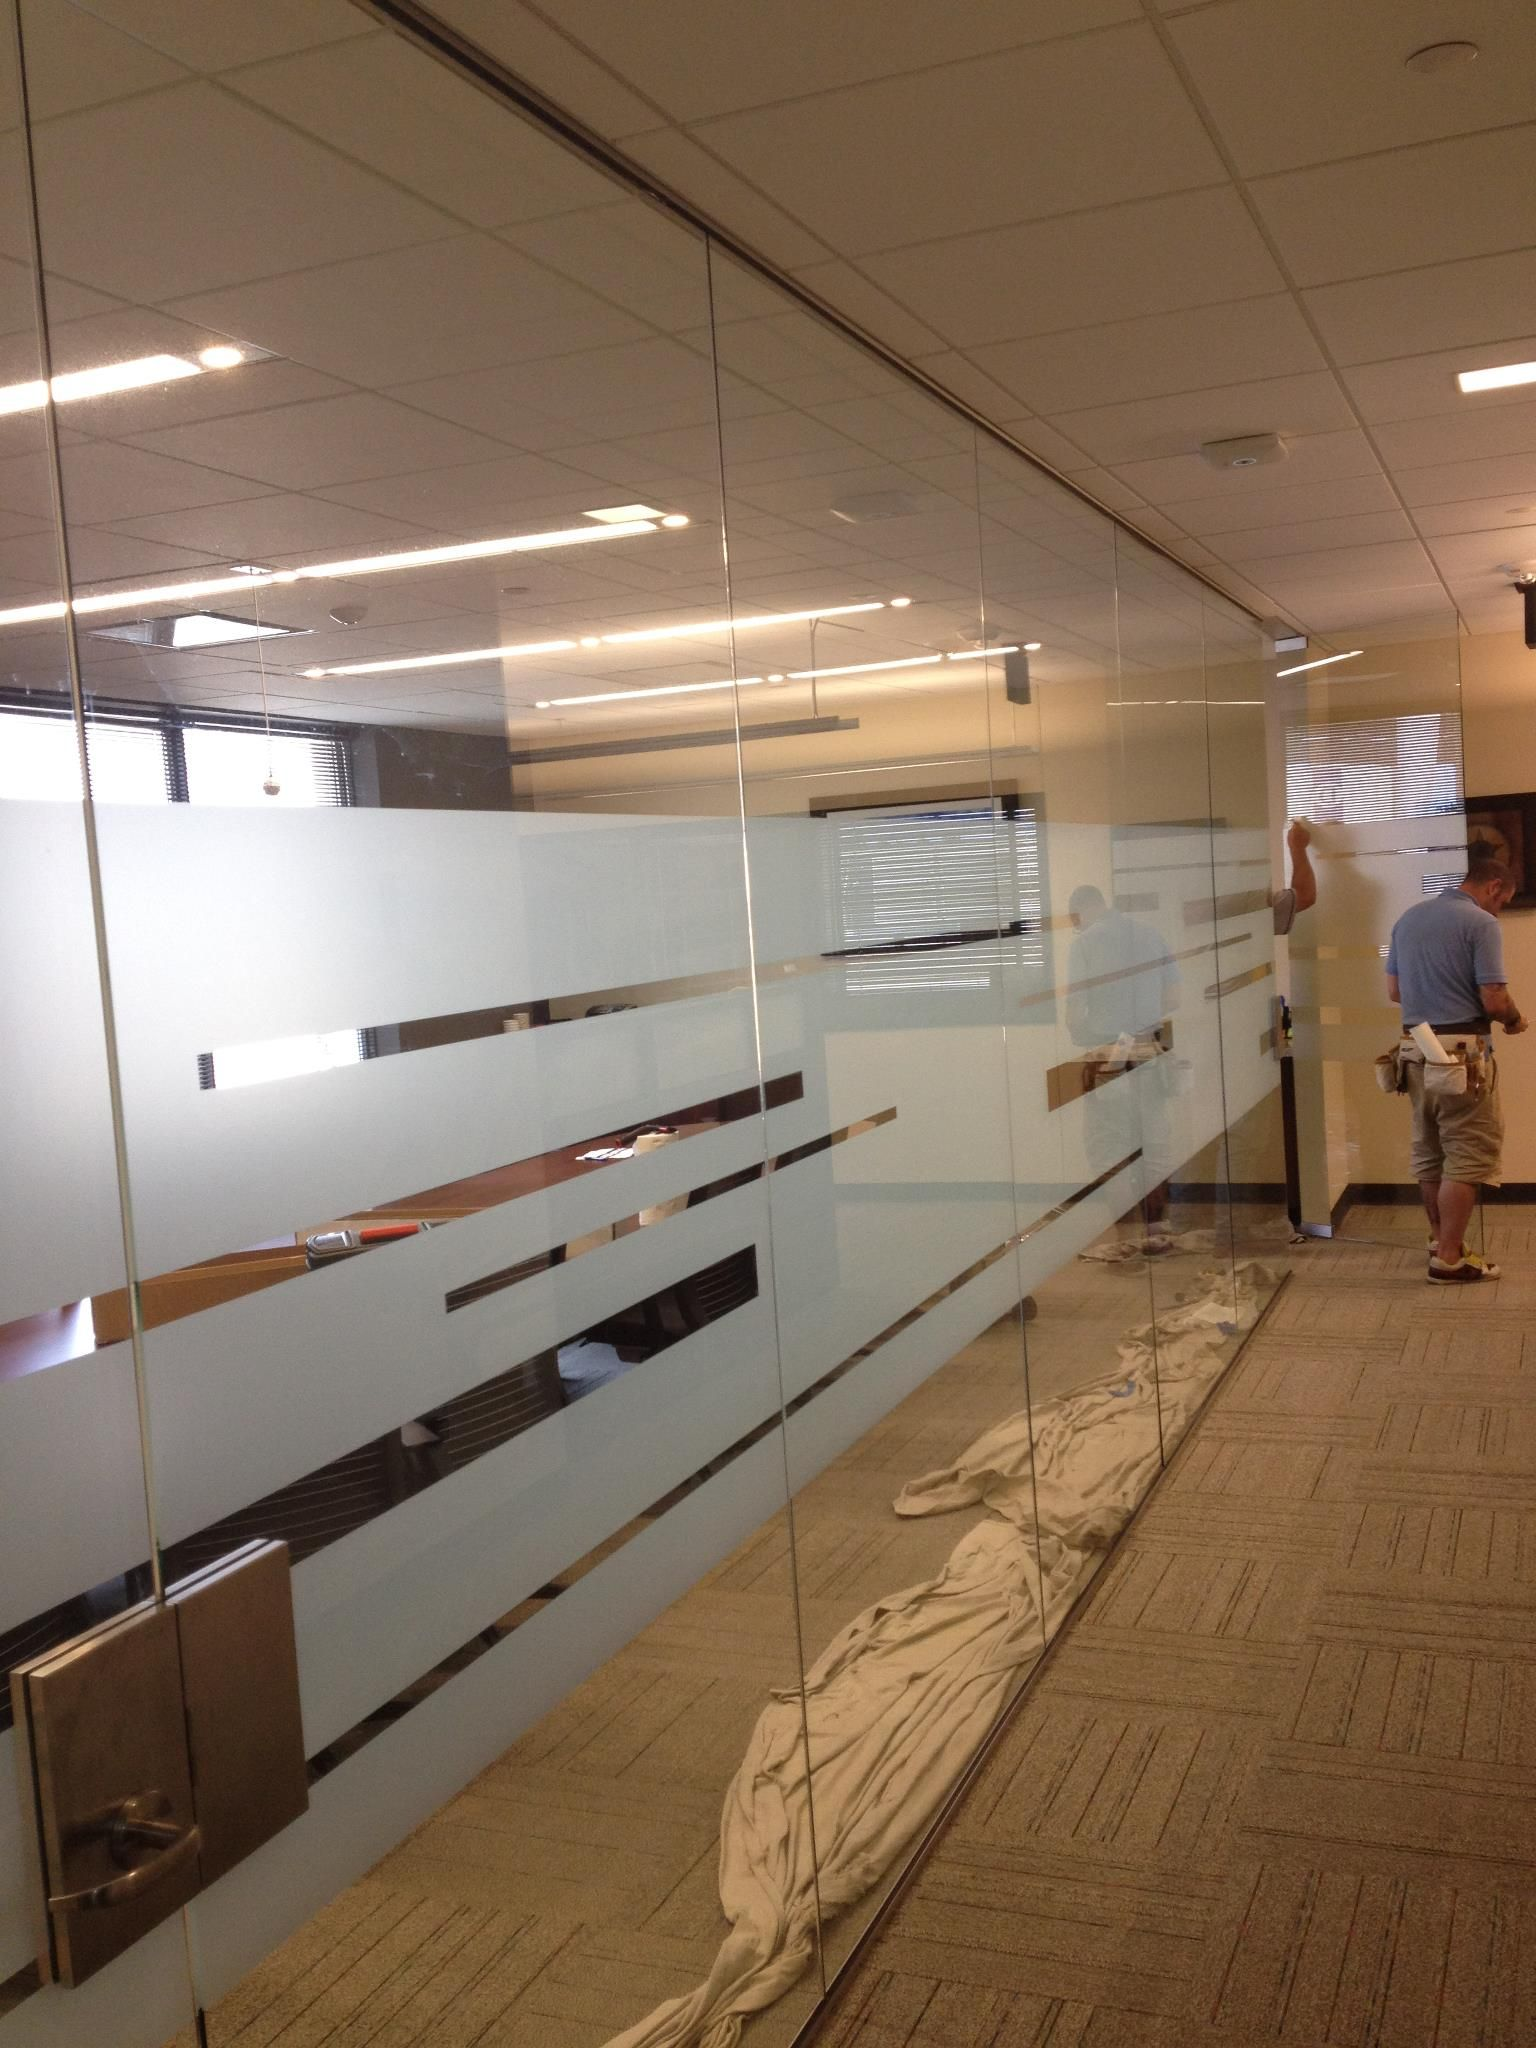 Conference Room Interior Design: Conference Room Glass Frosting - Google Search